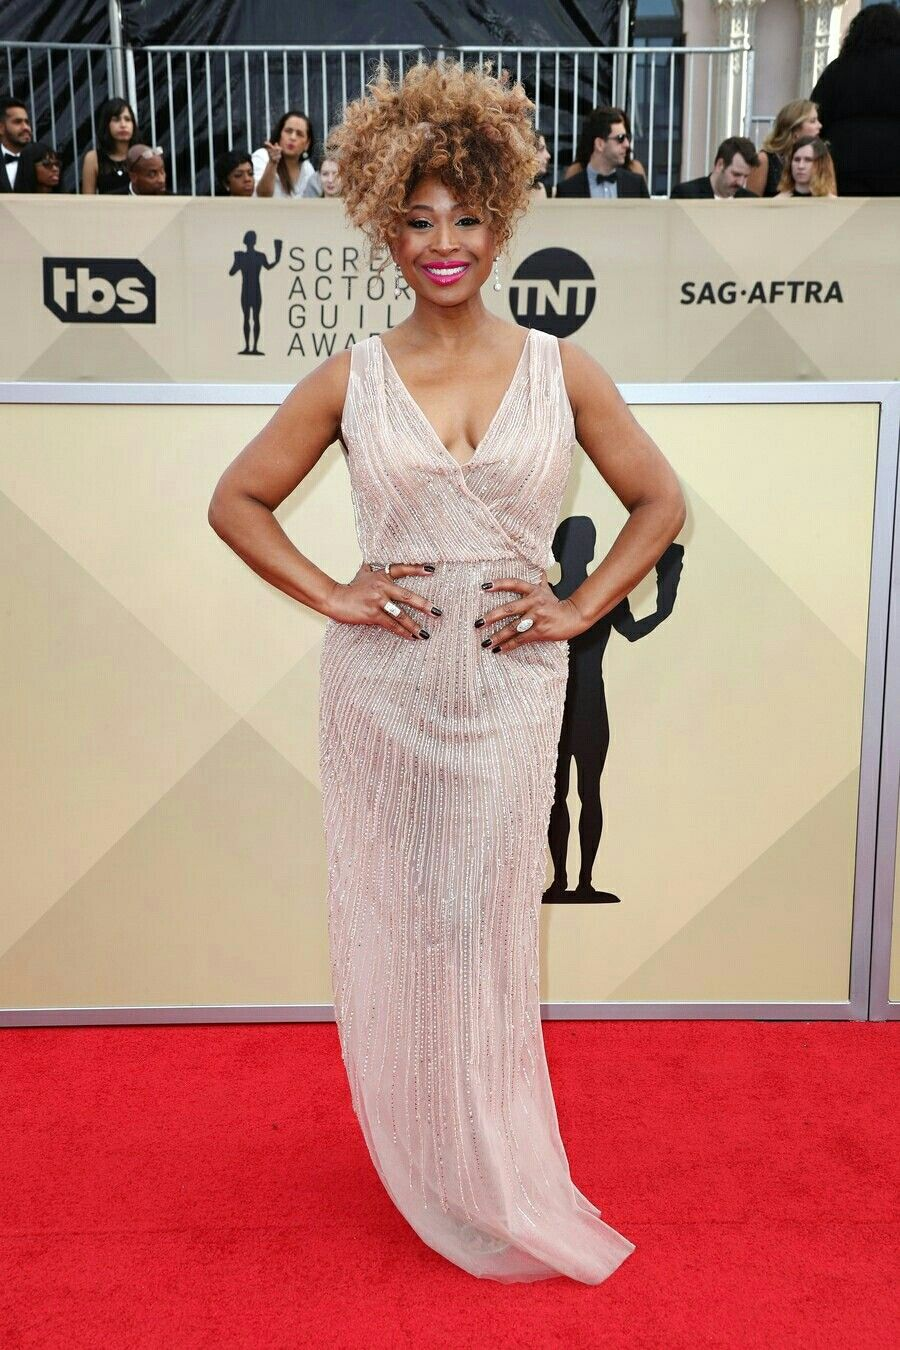 Tanika Ray Mailed It At The Sag Awards In A Sparkling Transparent